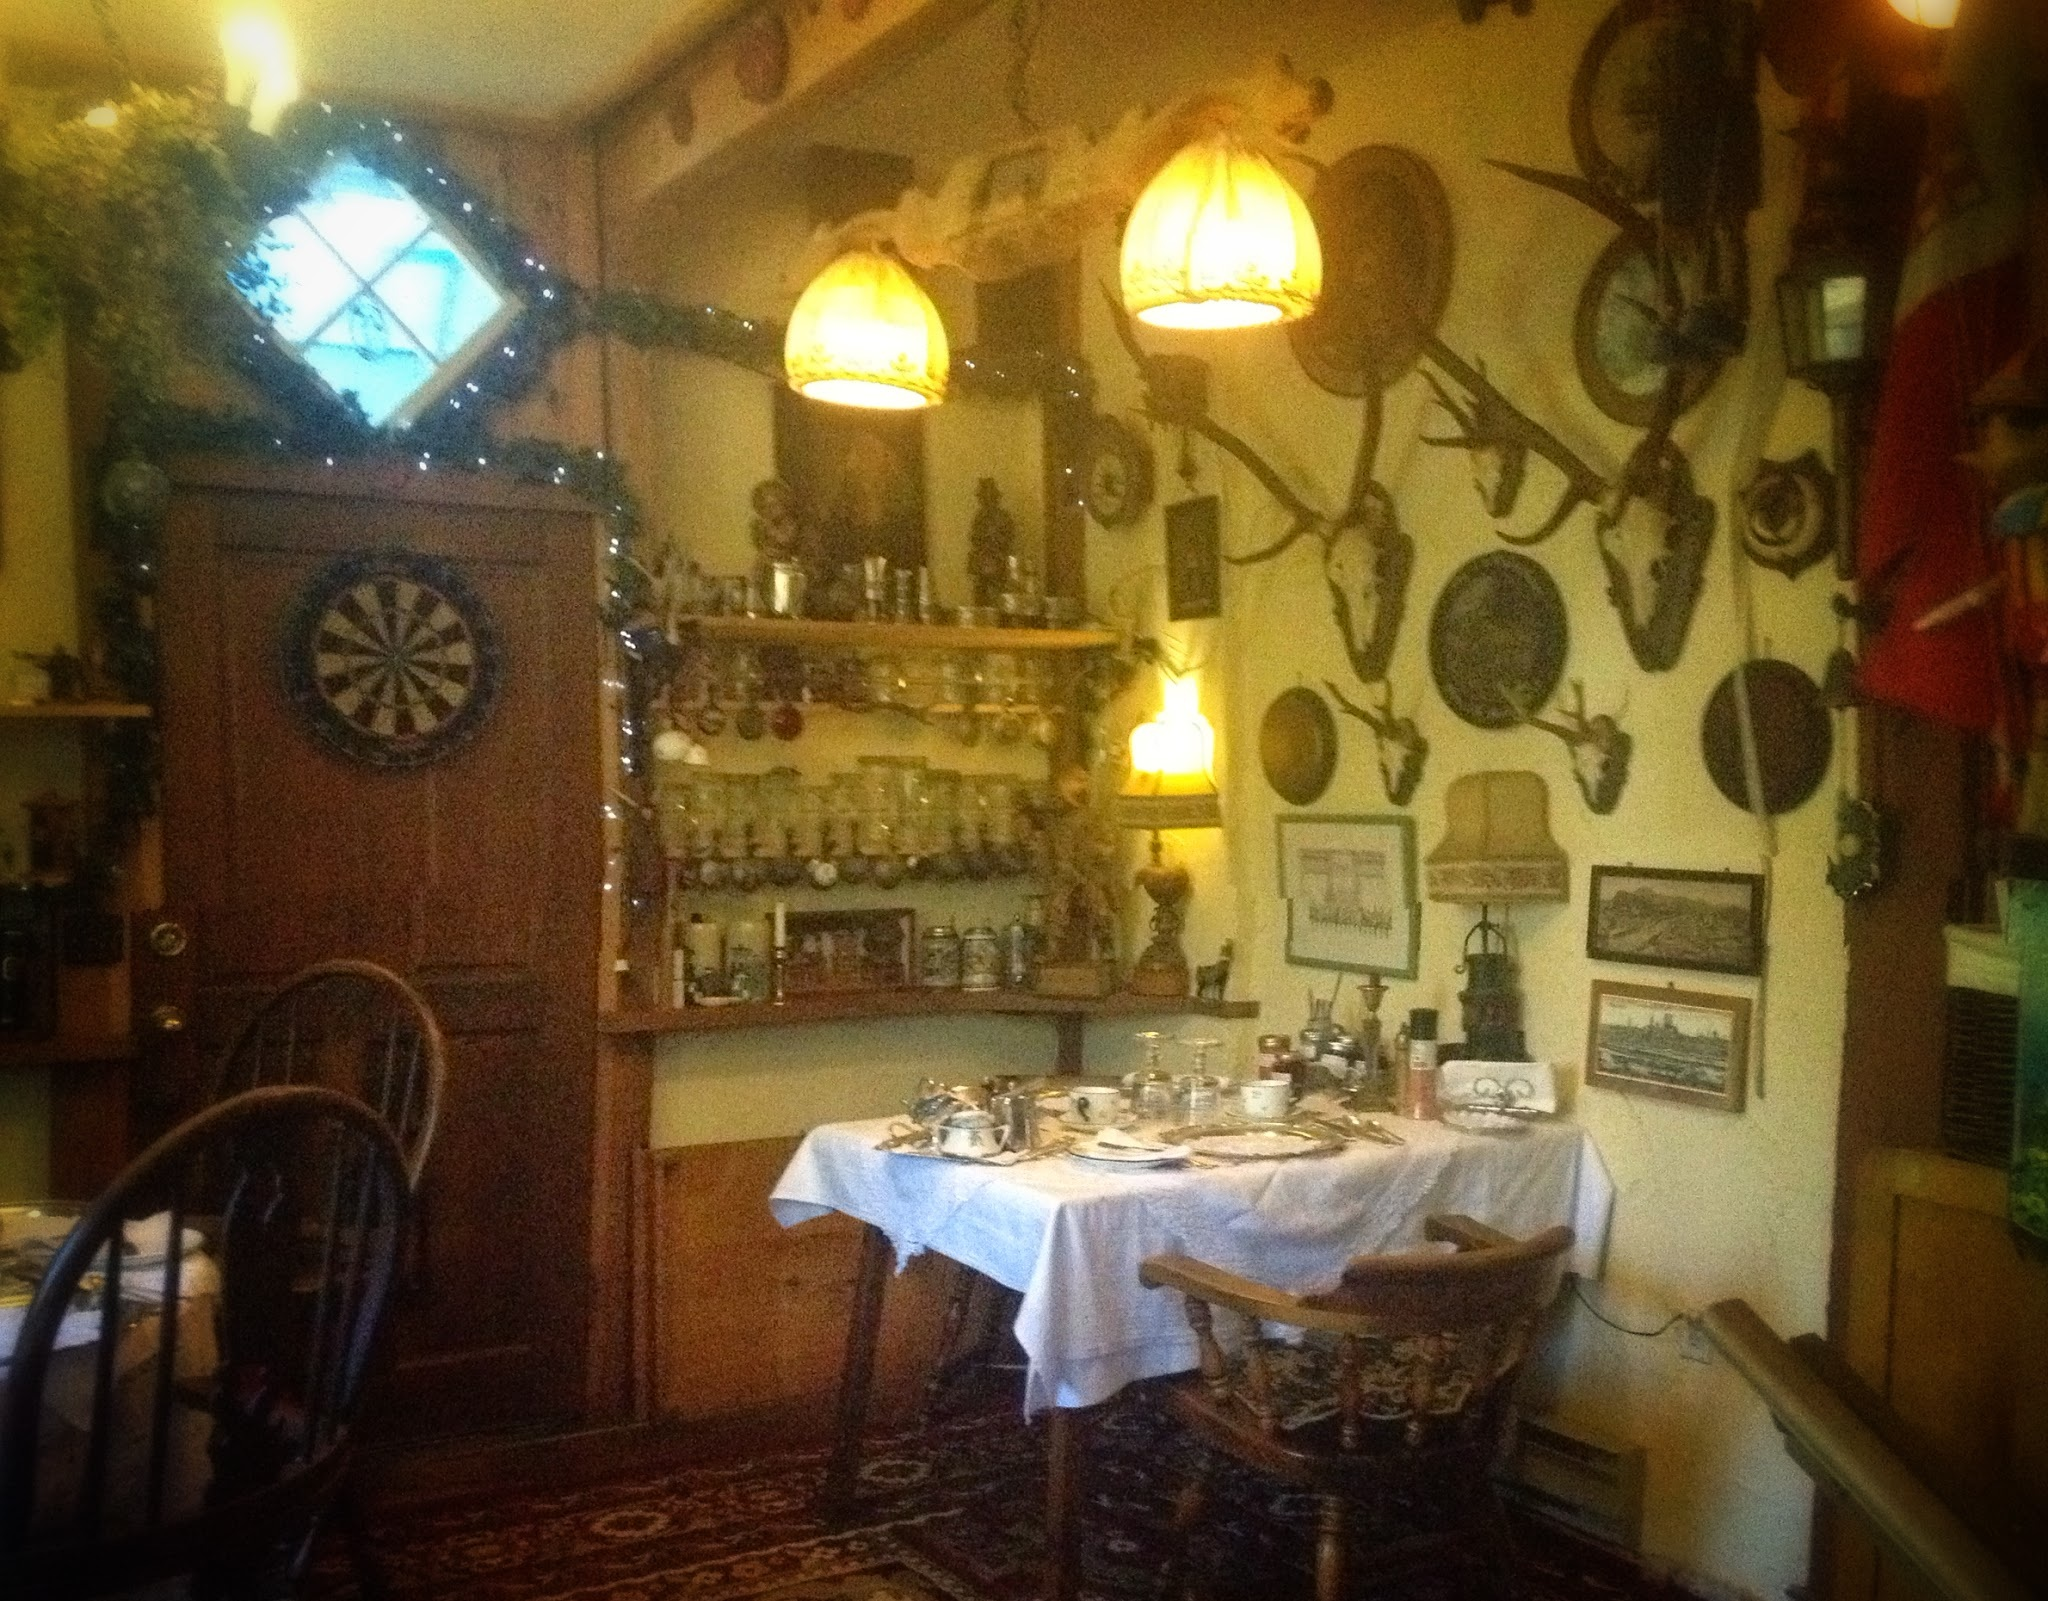 Gingerbread Cottage Gasthaus style Breakfast Room